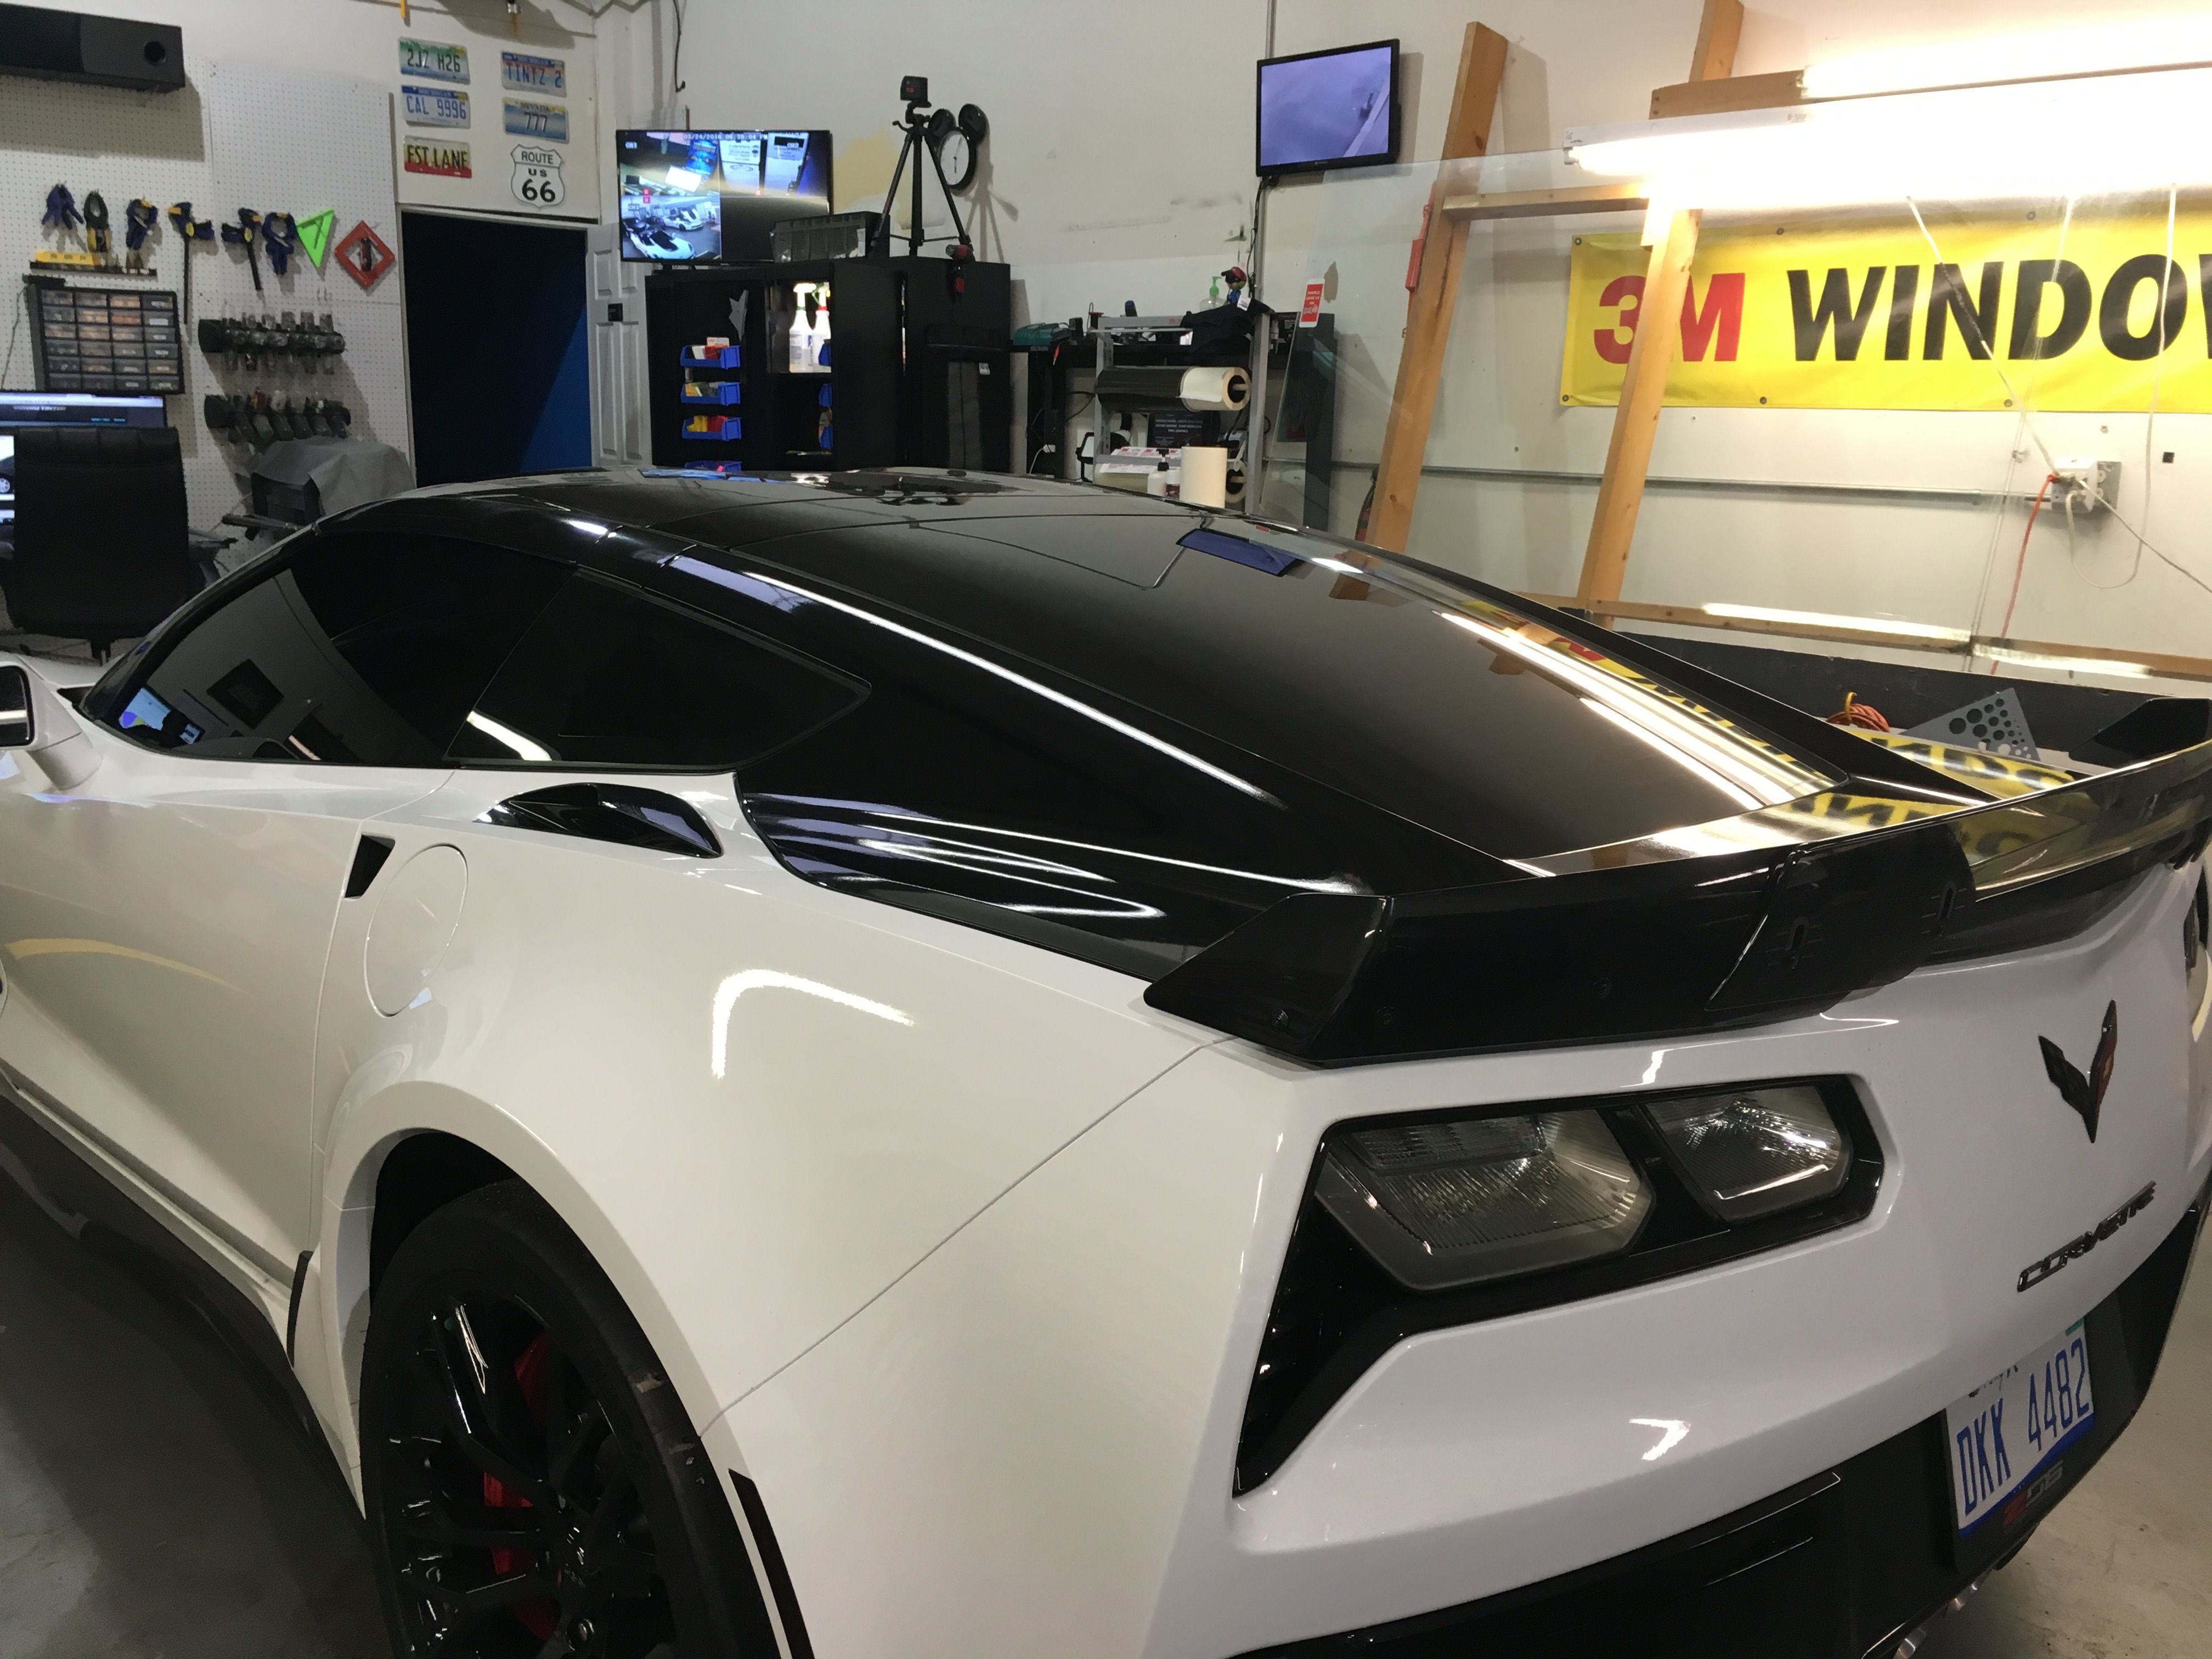 2016 CORVETTE BACK LID WRAP